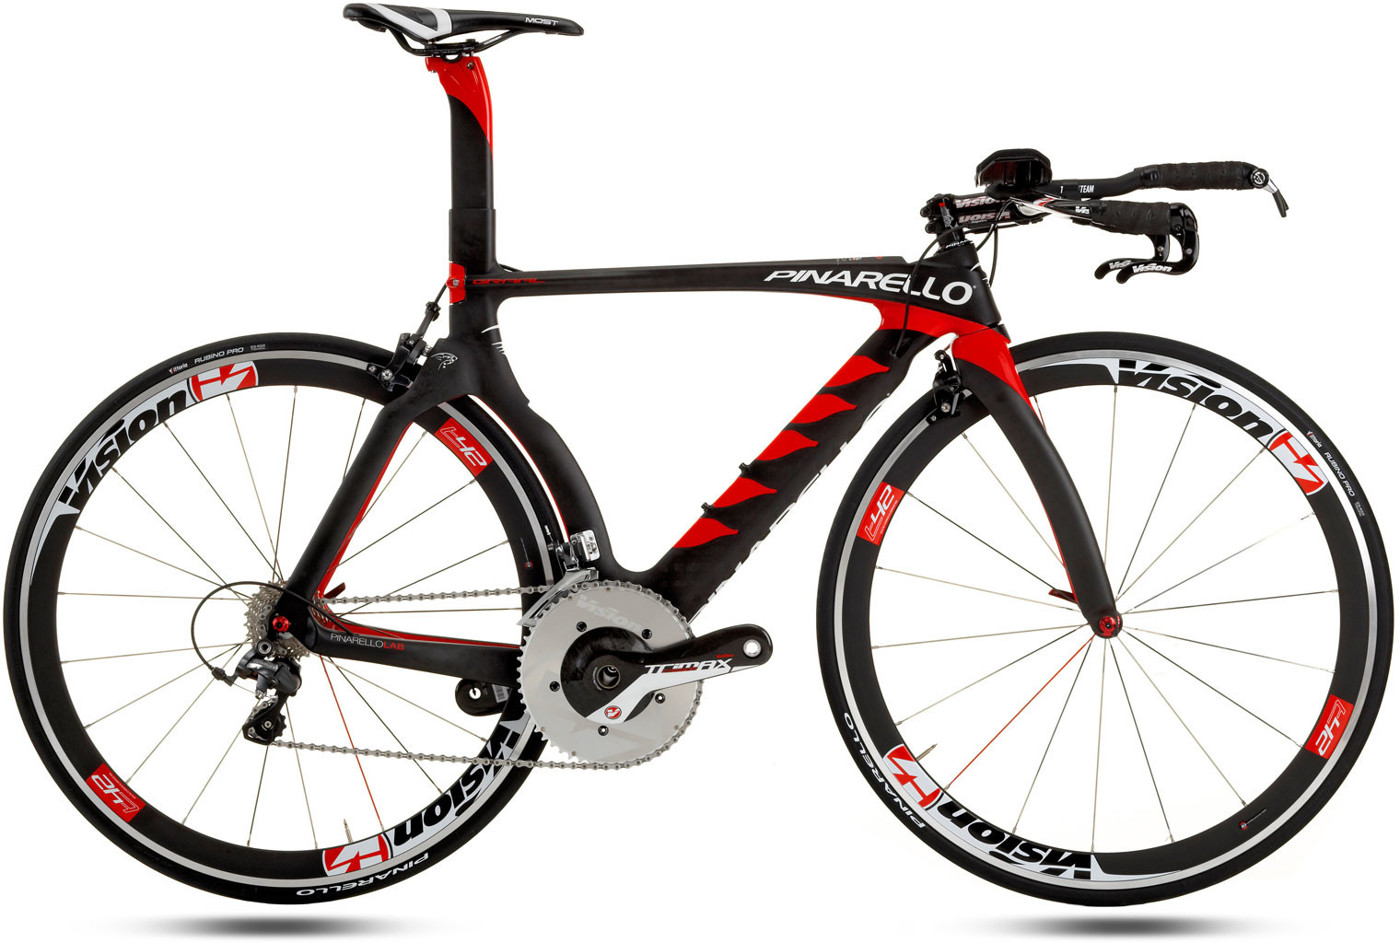 Pinarello GRAAL Triathlon - Aerospace Carbon Torayca® 30HM12K - 790 Nero Red 2016 Triatlon Racercykel